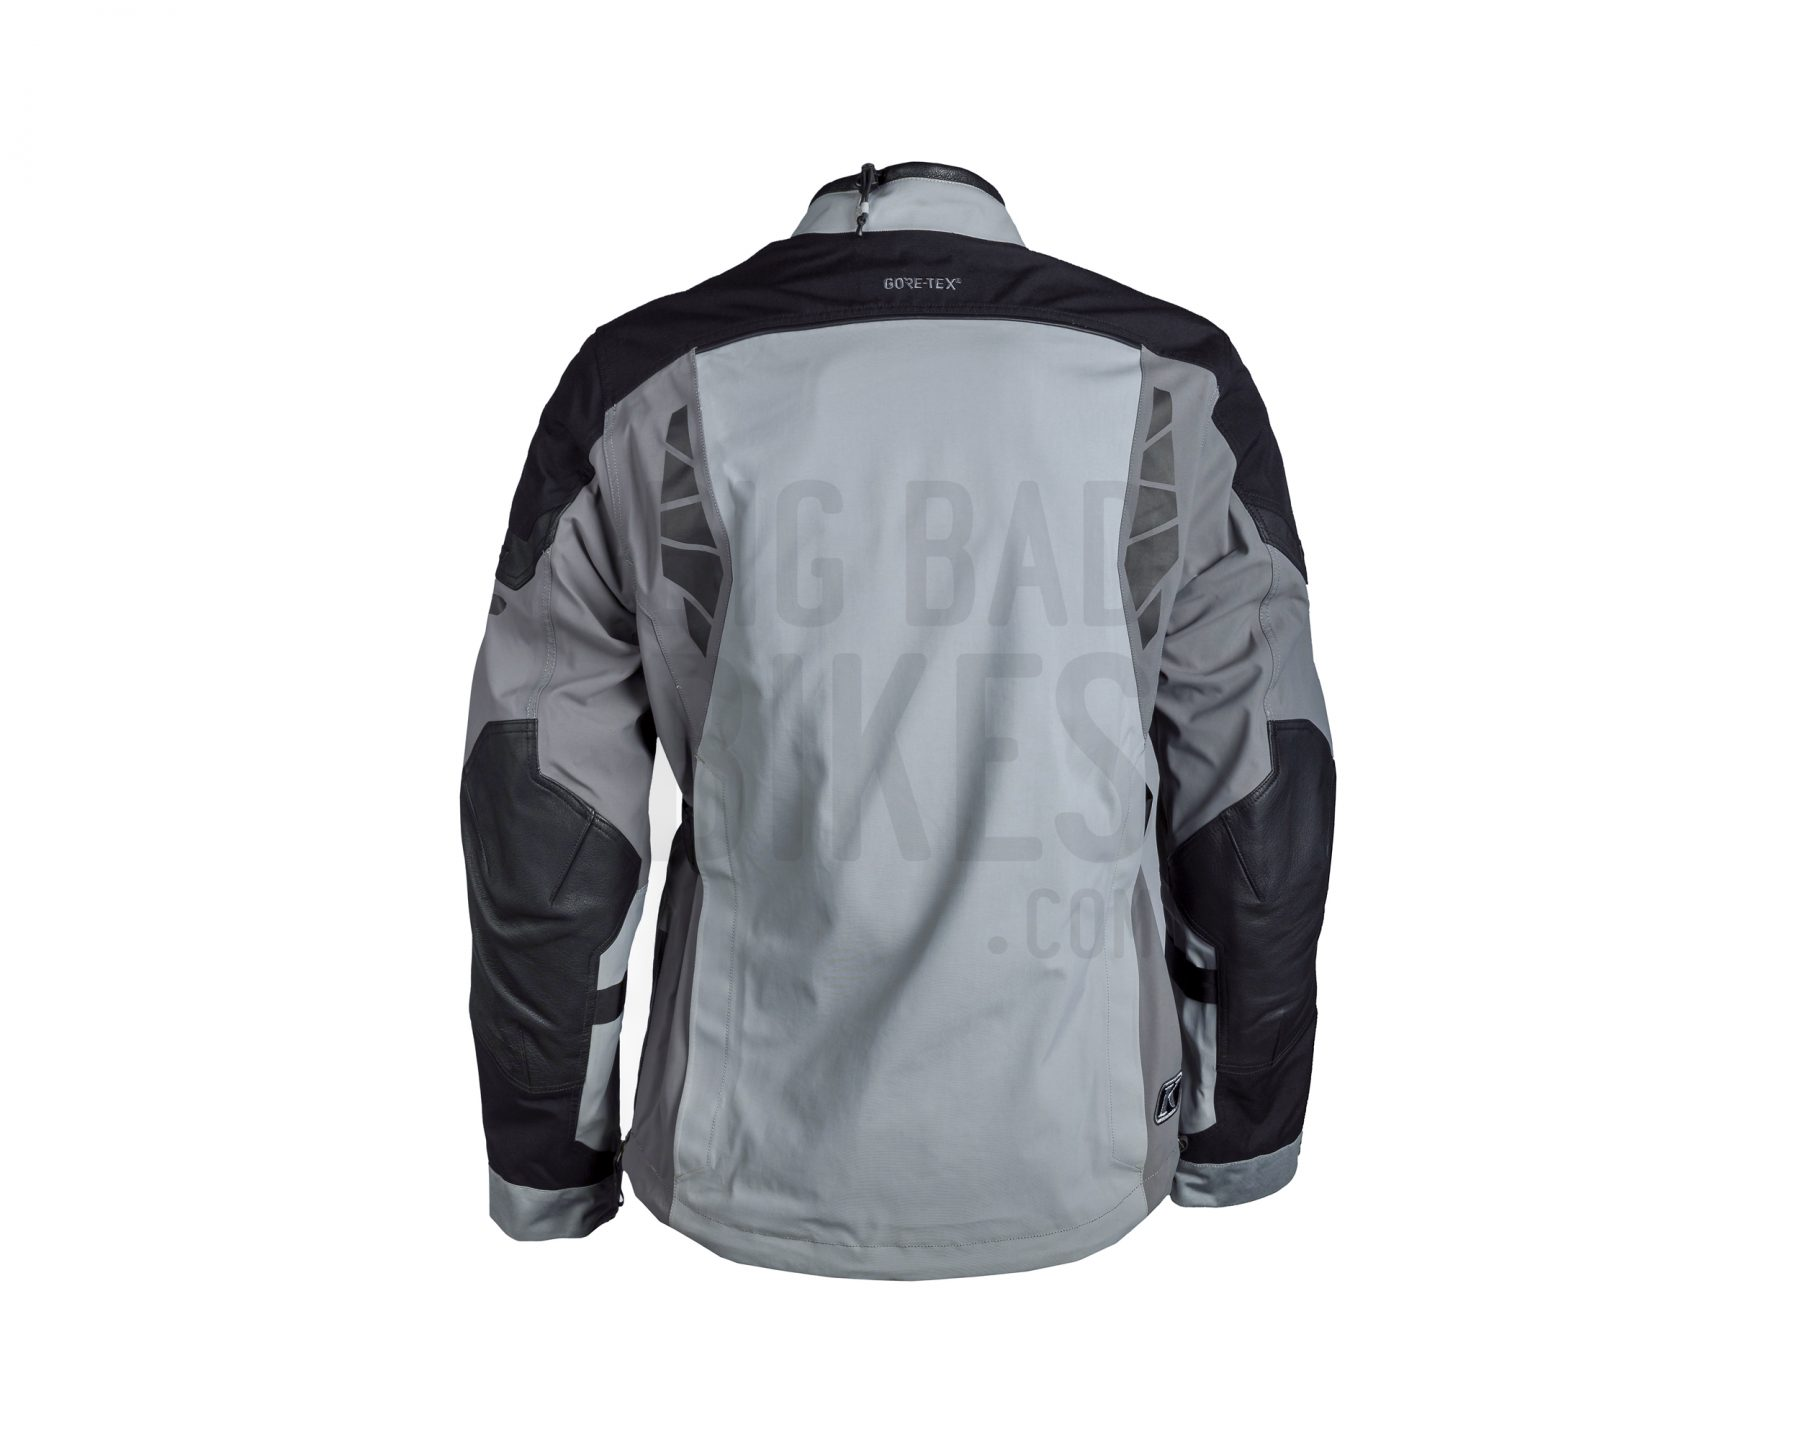 Latitude Jacket_5146-003_Gray_03